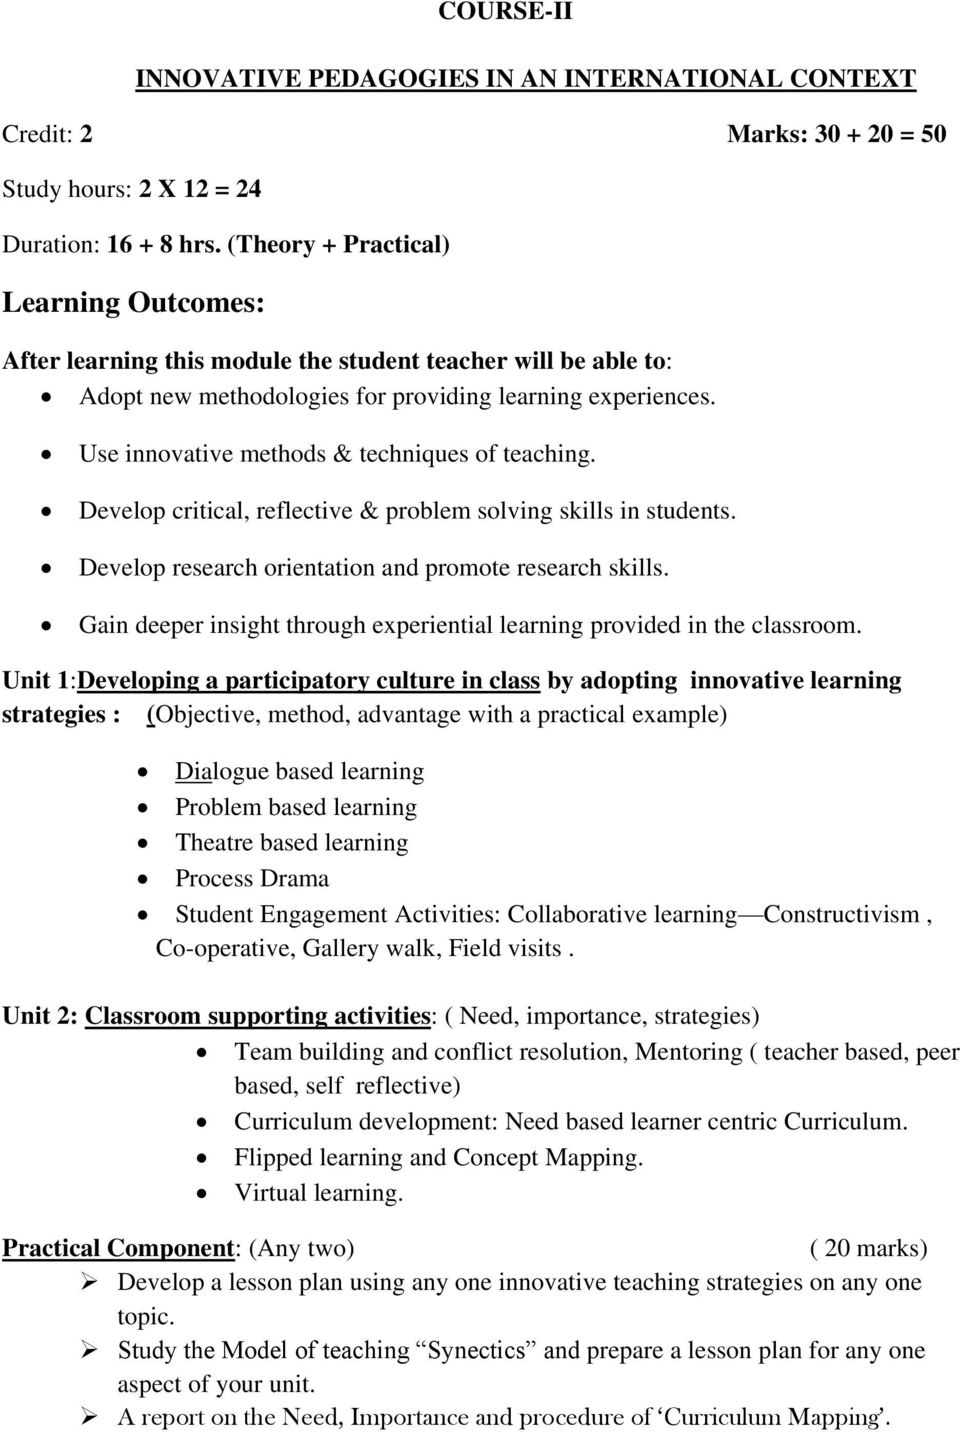 Use innovative methods & techniques of teaching. Develop critical, reflective & problem solving skills in students. Develop research orientation and promote research skills.